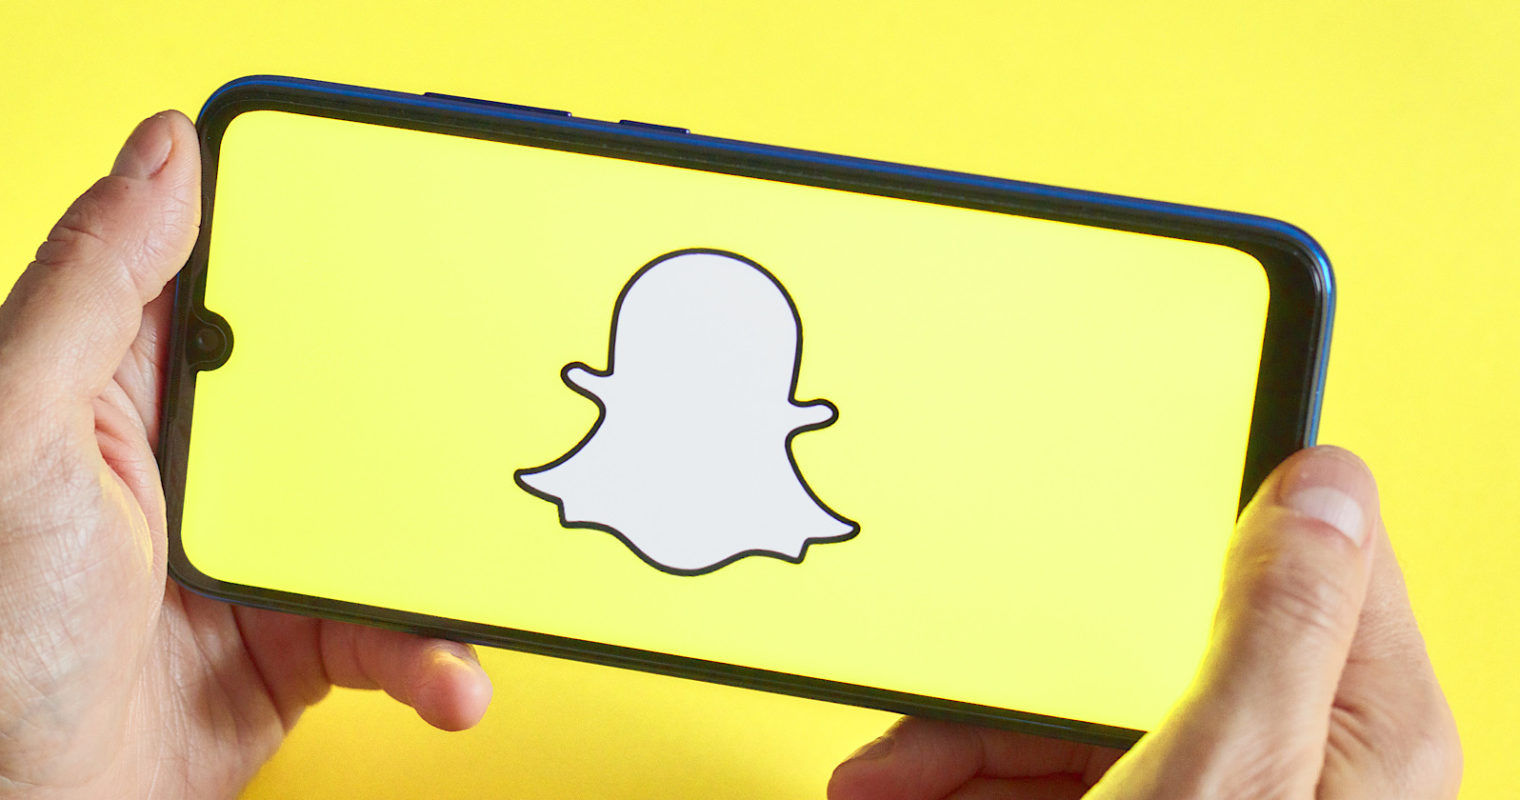 Snapchat Extends Length of Video Ads from 10 Seconds to 3 Minutes